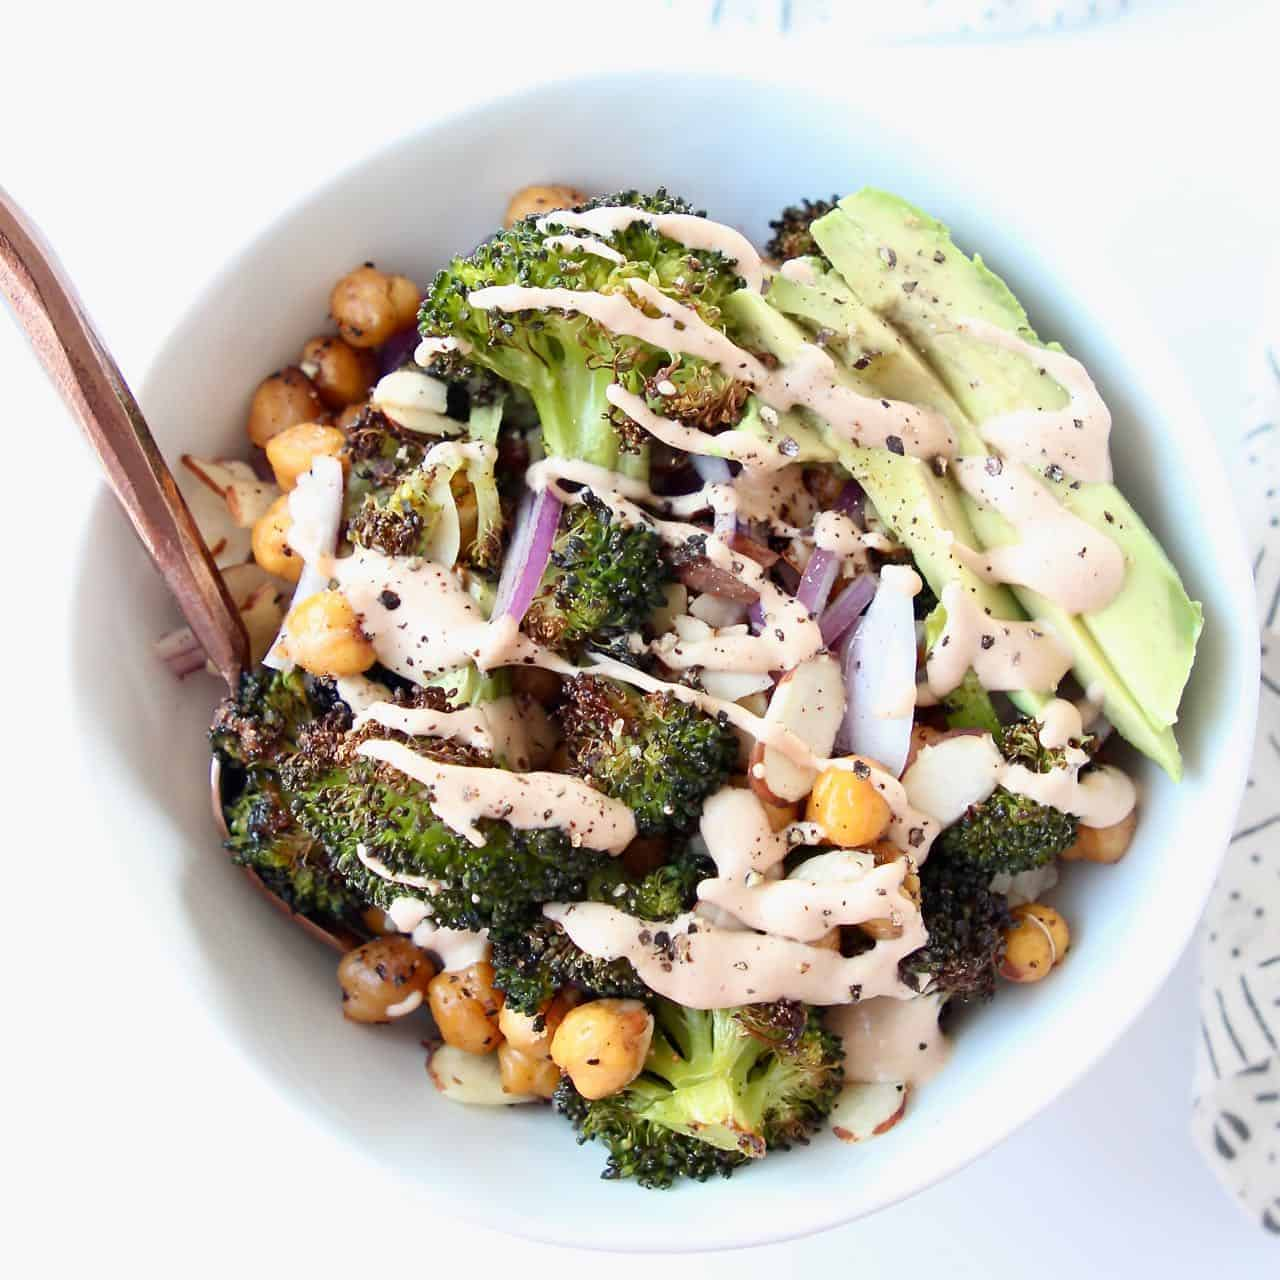 Overhead image of roasted broccoli and sliced avocado in bowl with fork